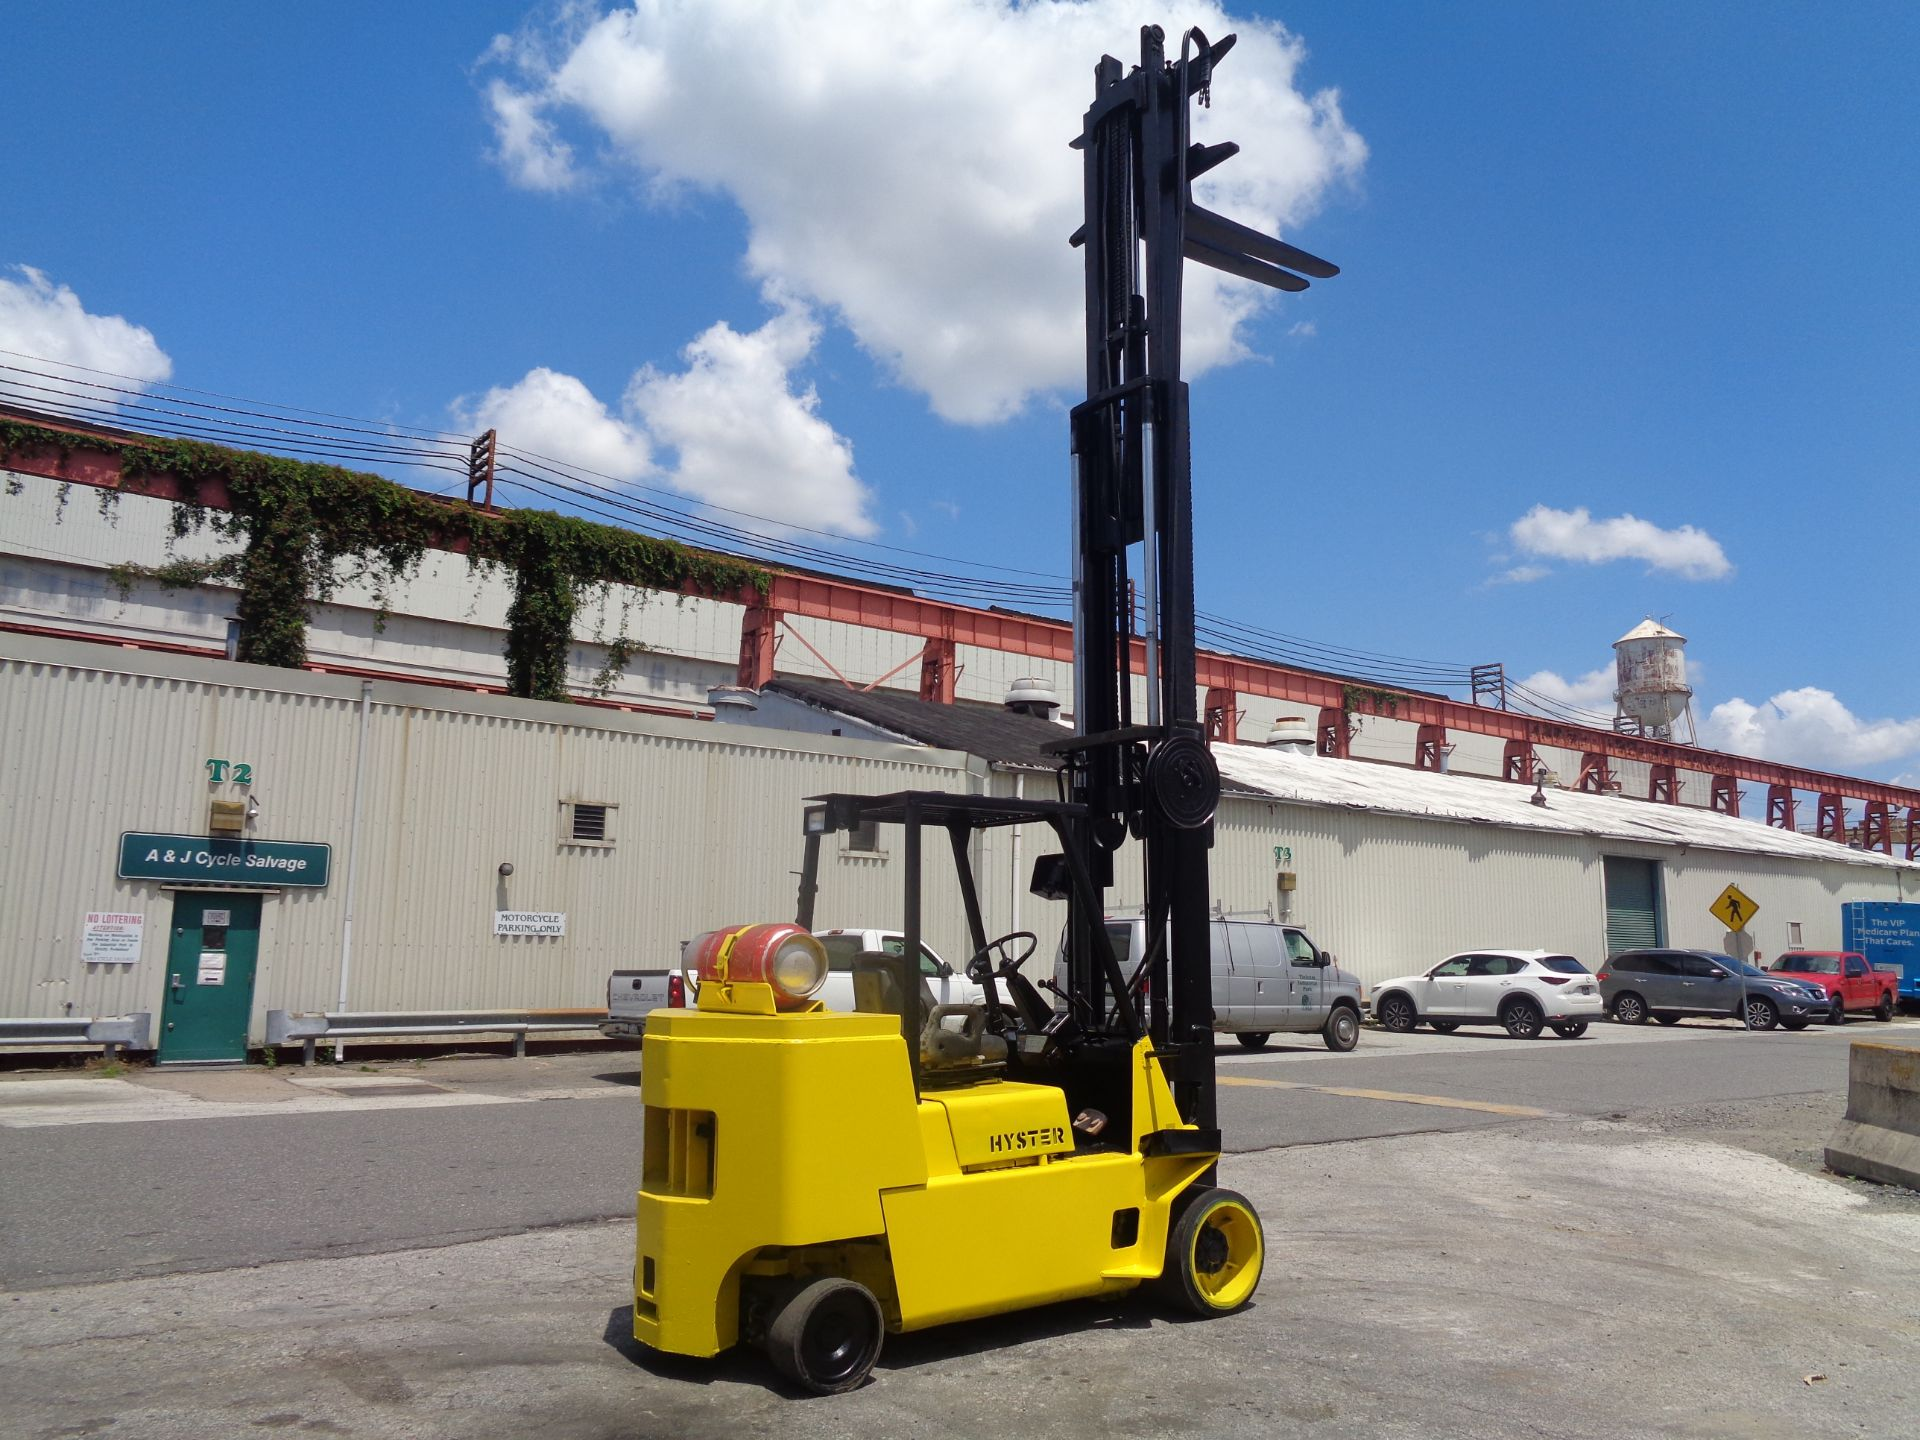 Hyster S120XL 12,000lb Forklift - Image 13 of 14